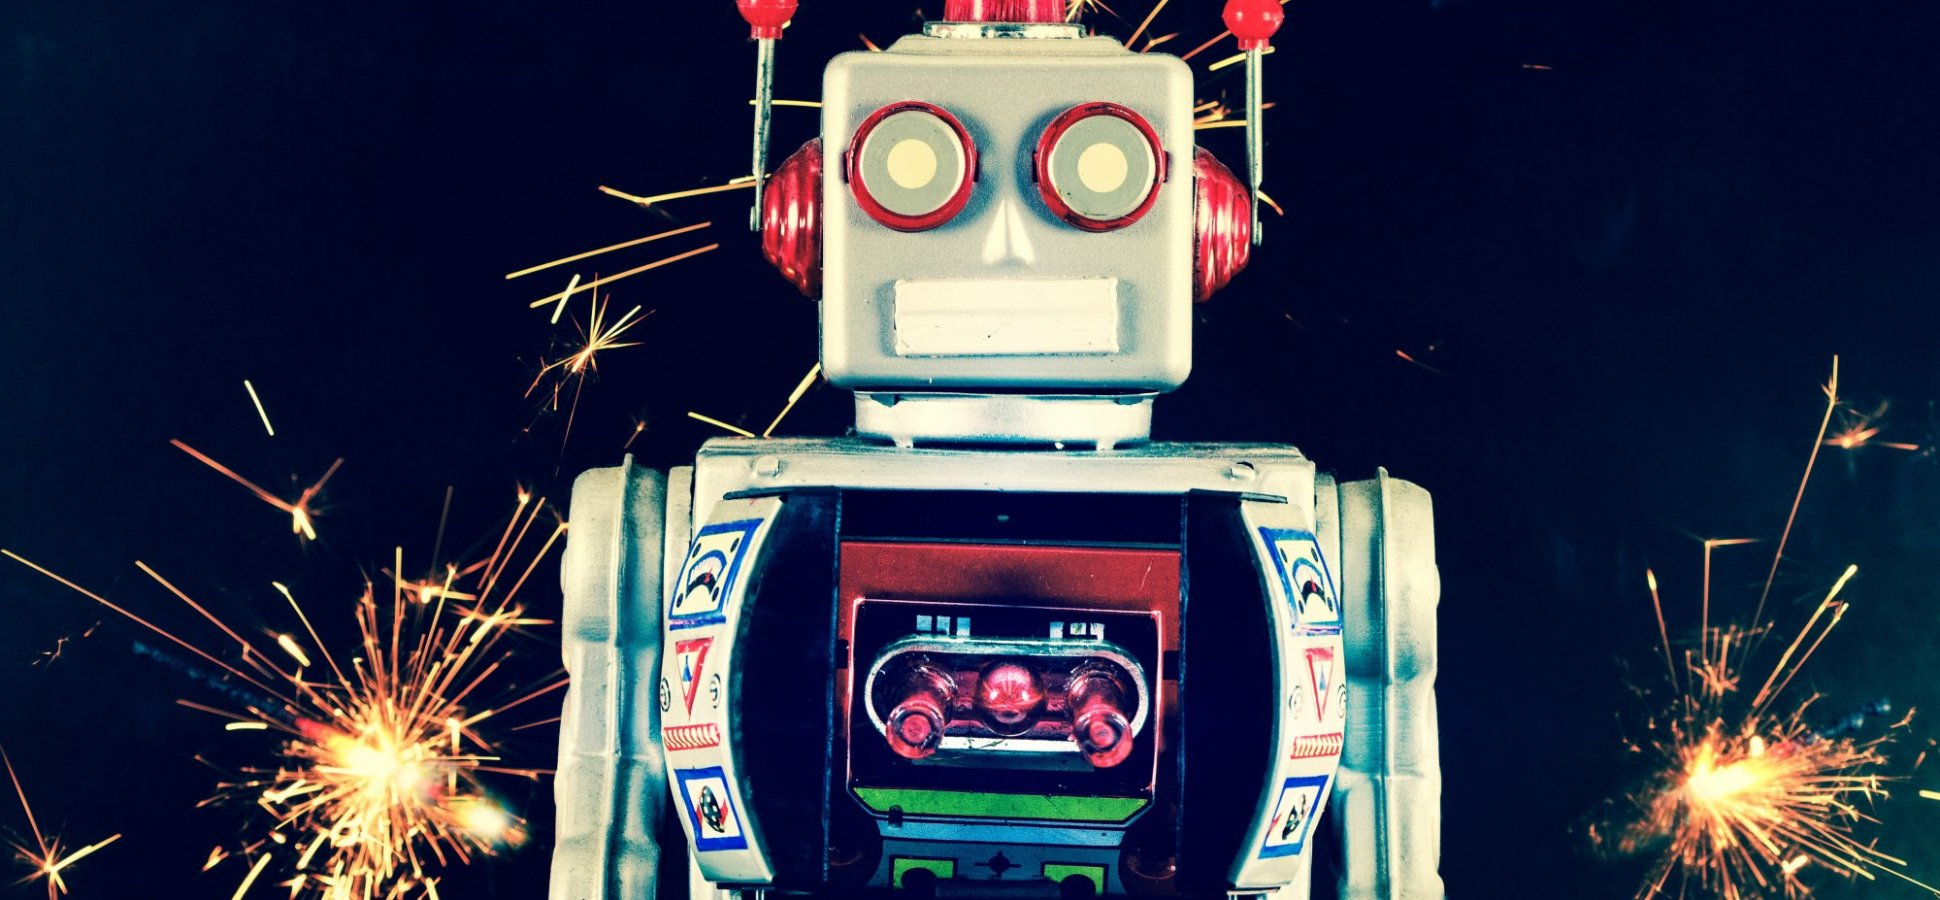 18 New Year's Resolutions of an A.I.